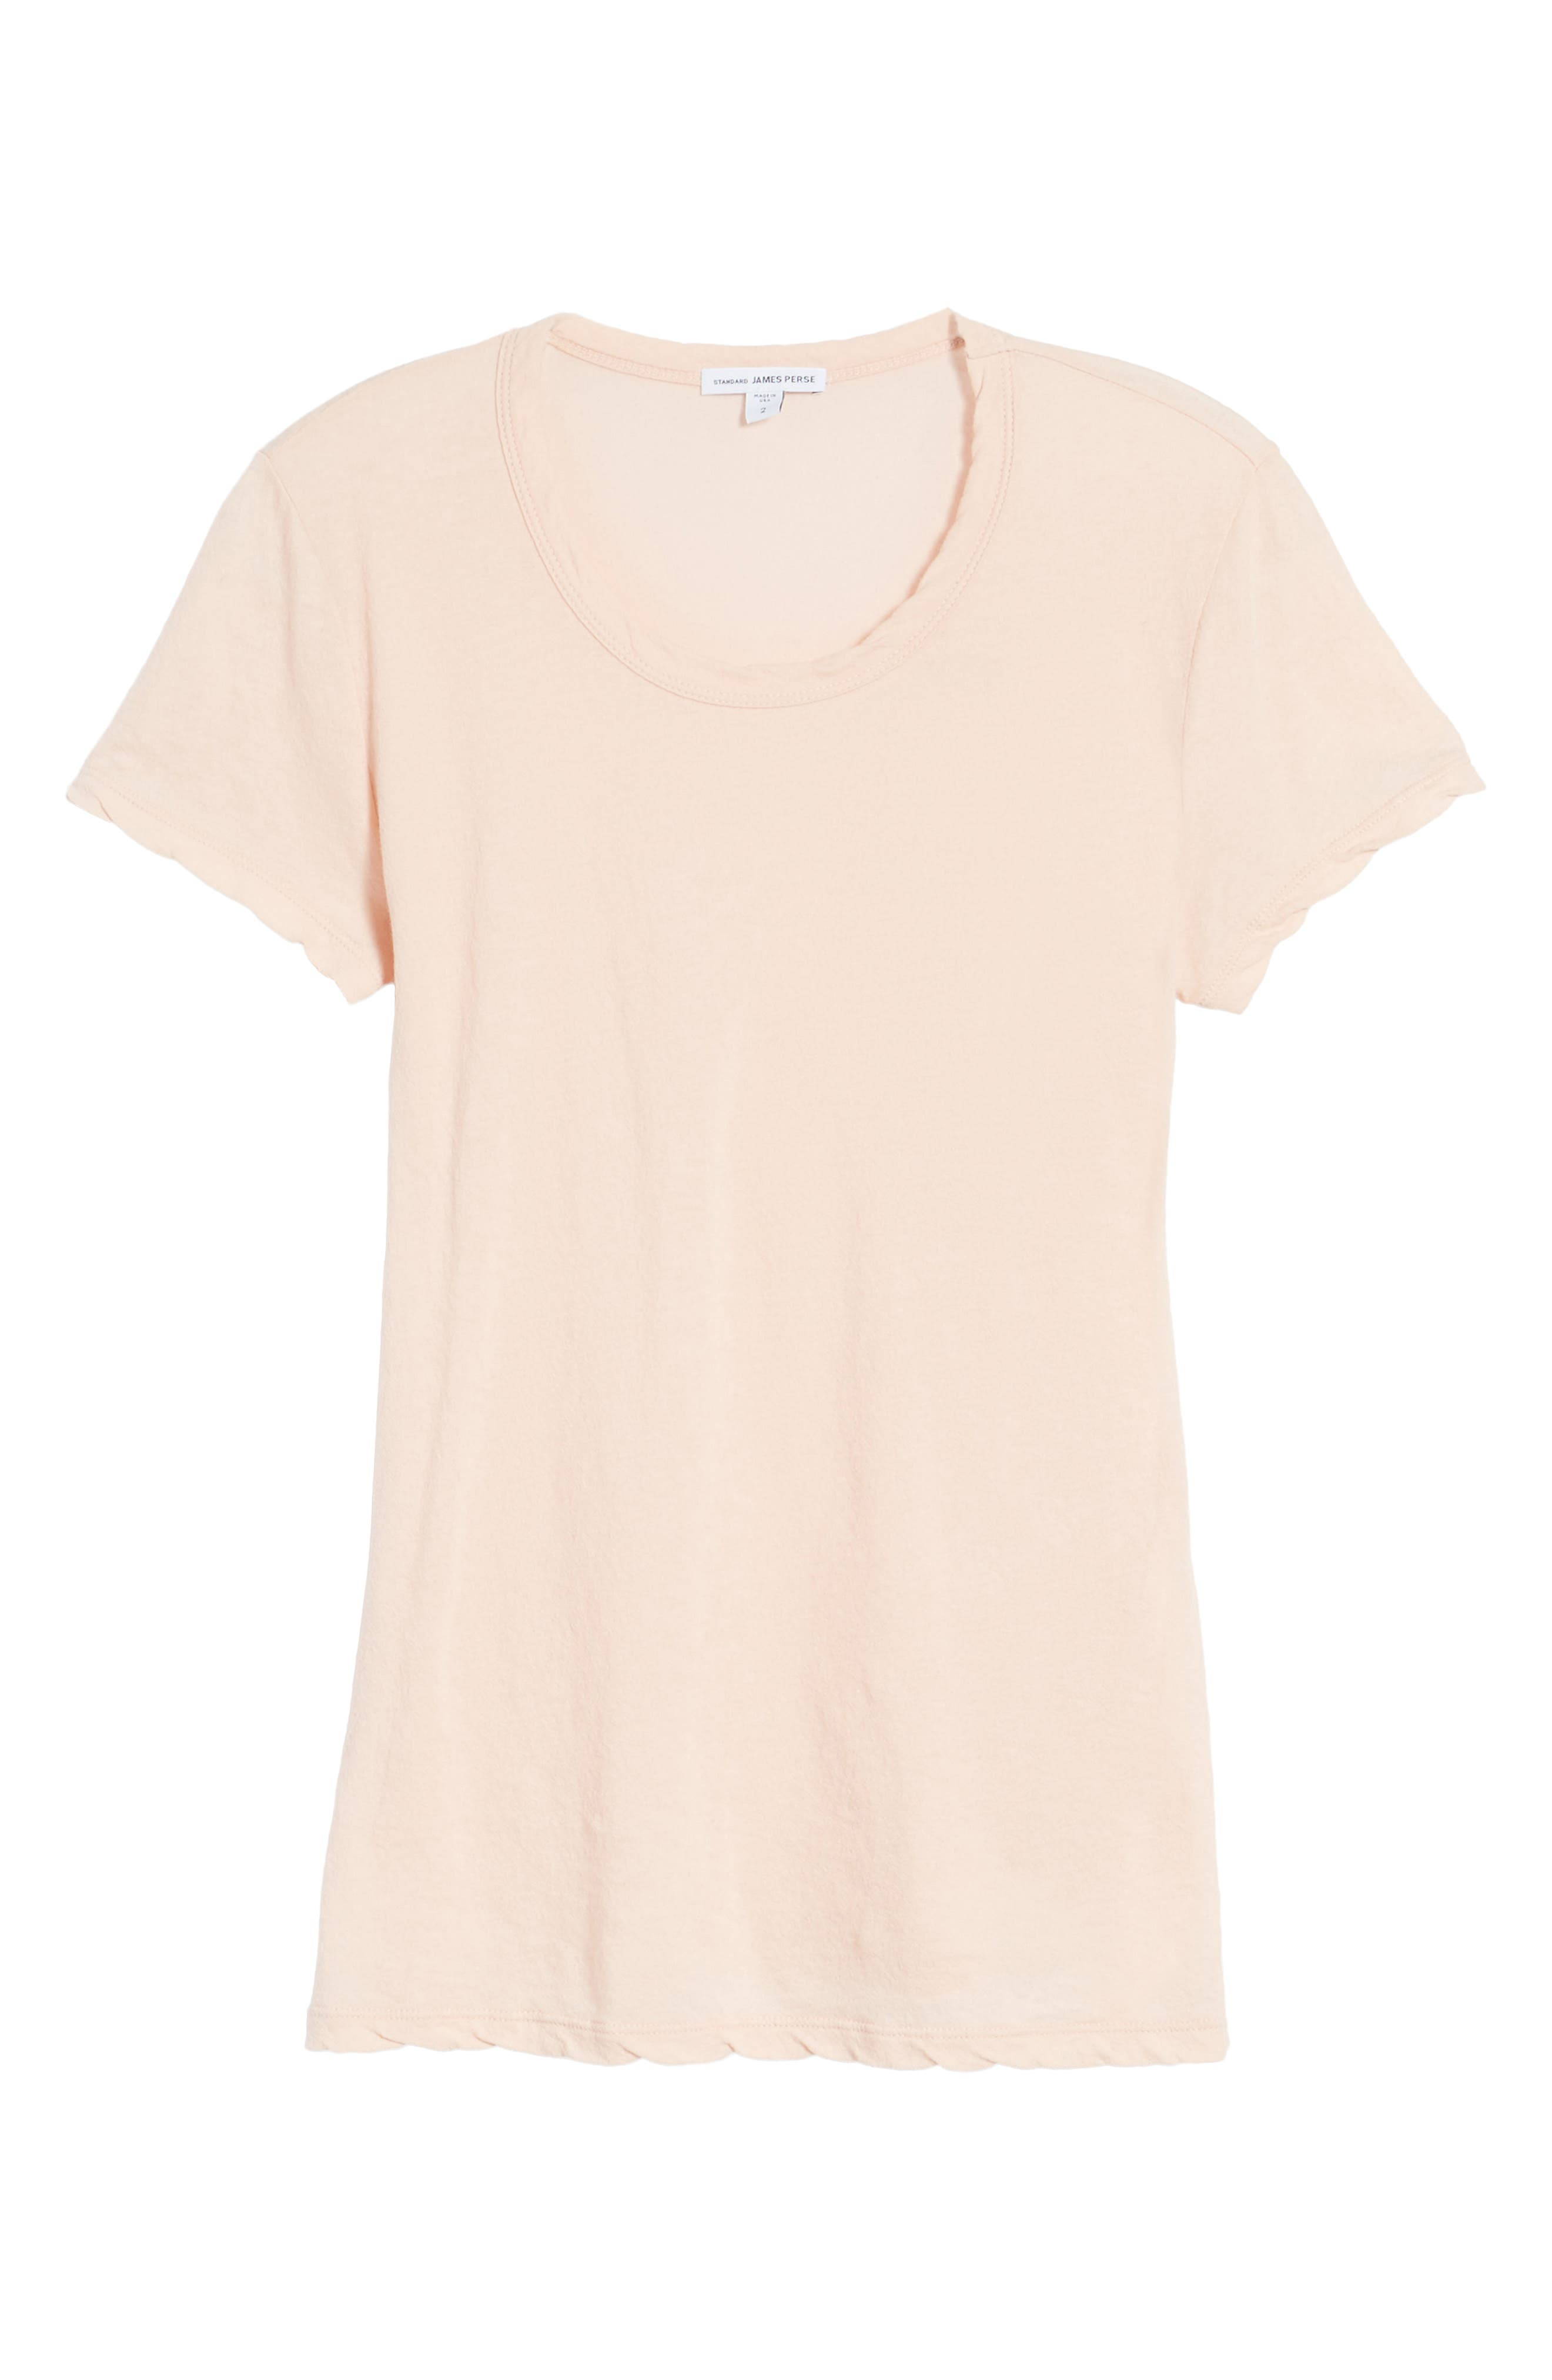 Crepe Jersey Tee,                             Alternate thumbnail 6, color,                             686